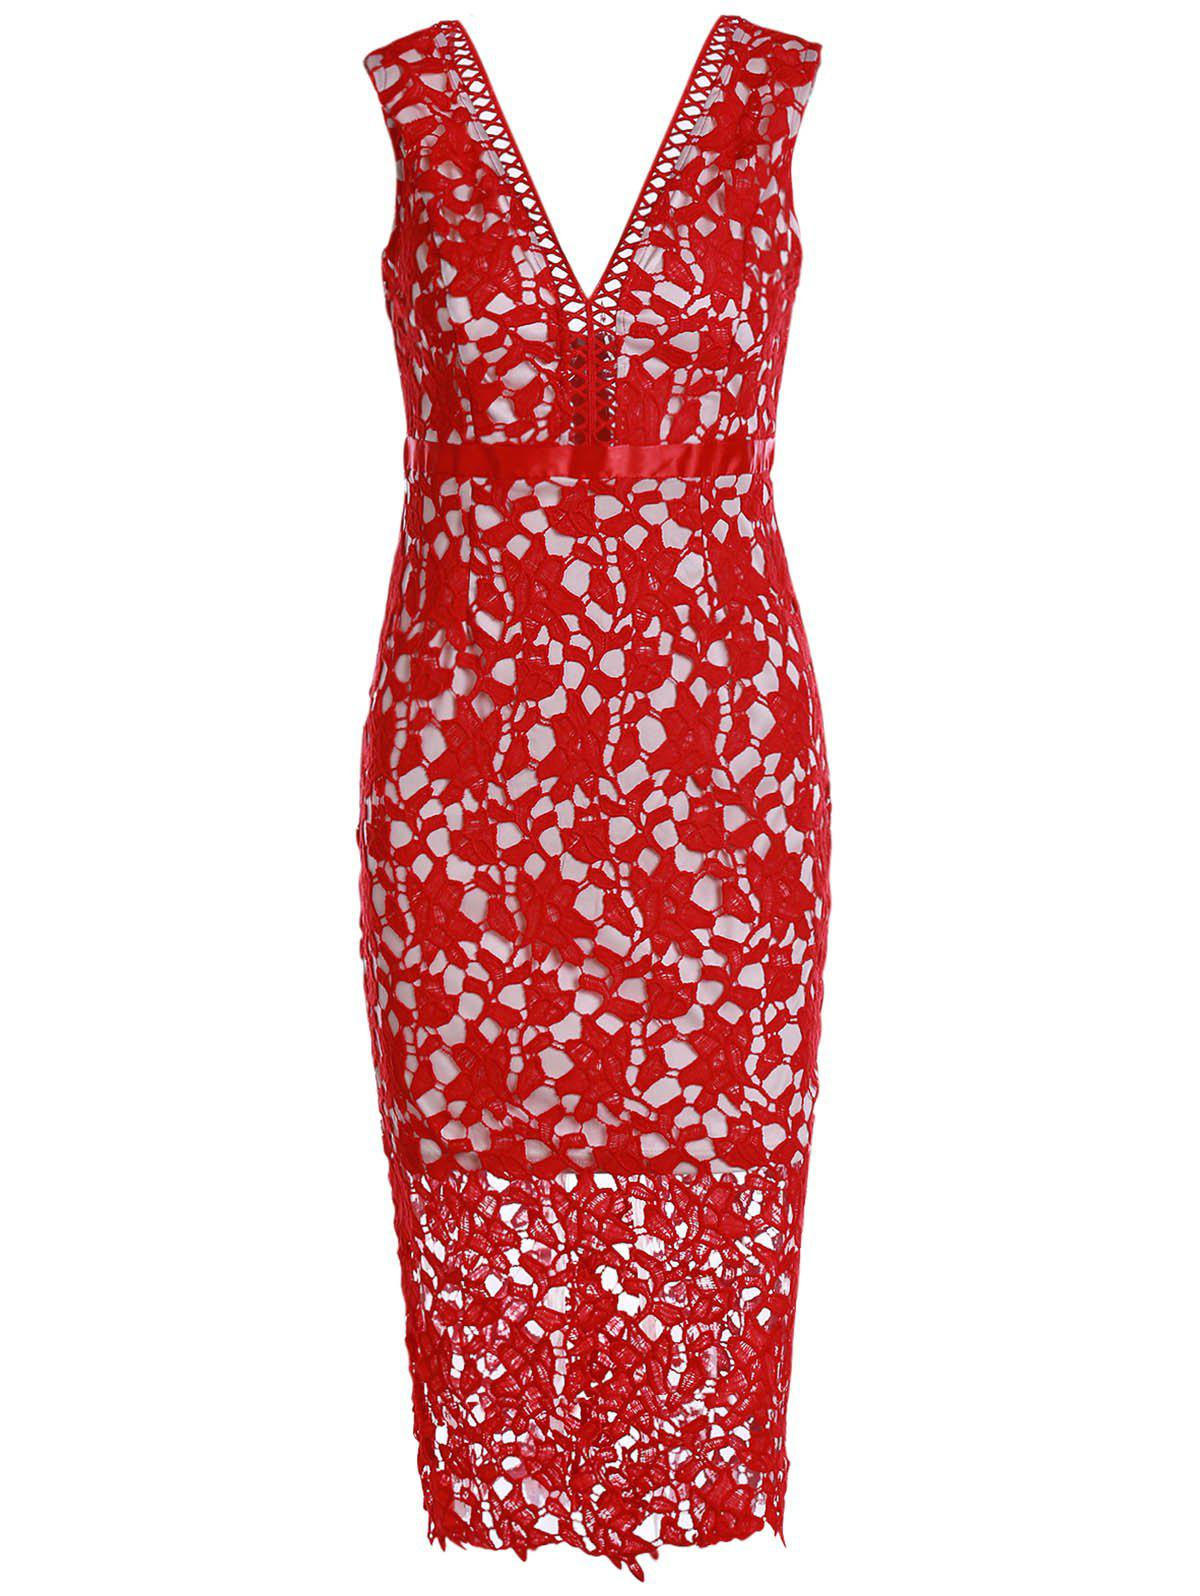 Alluring Plunging Neck Sleeveless Hollow Out Bodycon Women's Slit Dress - RED S